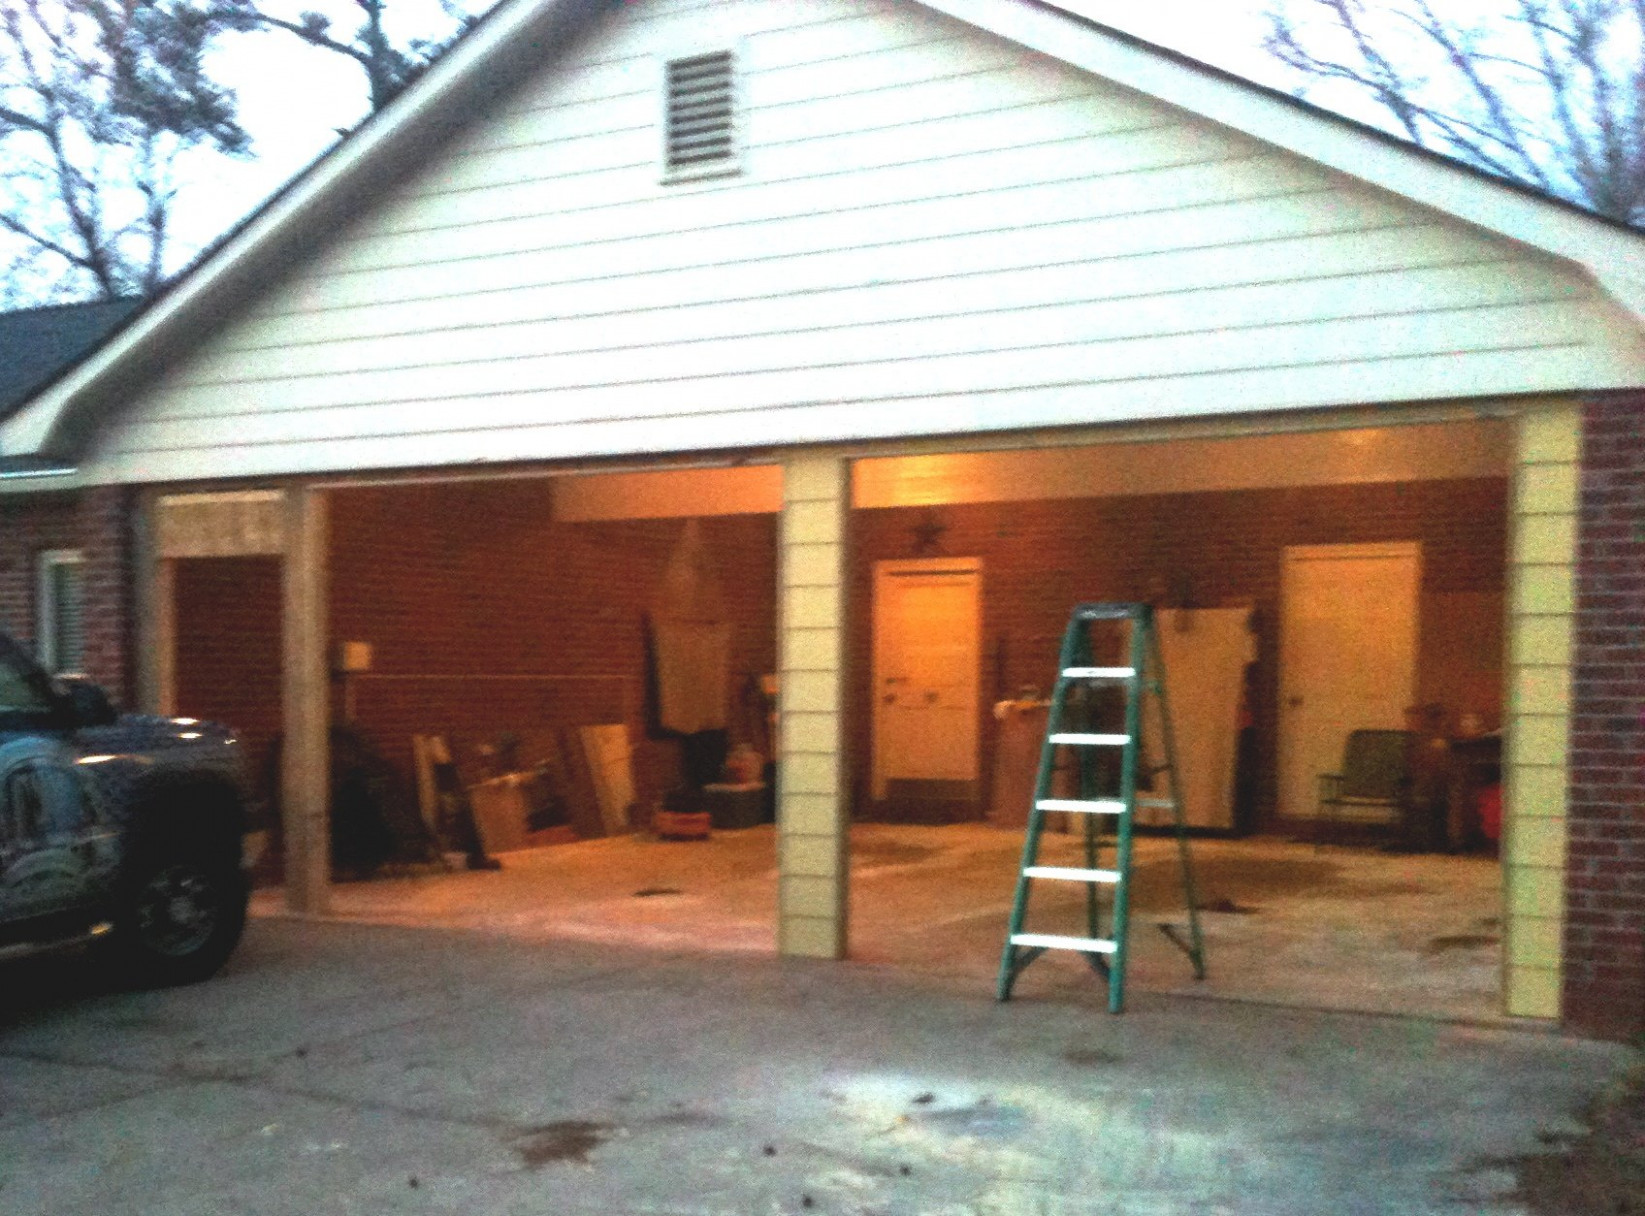 Enclosing A Carport Into A Garage Carport Into Room Convert ..